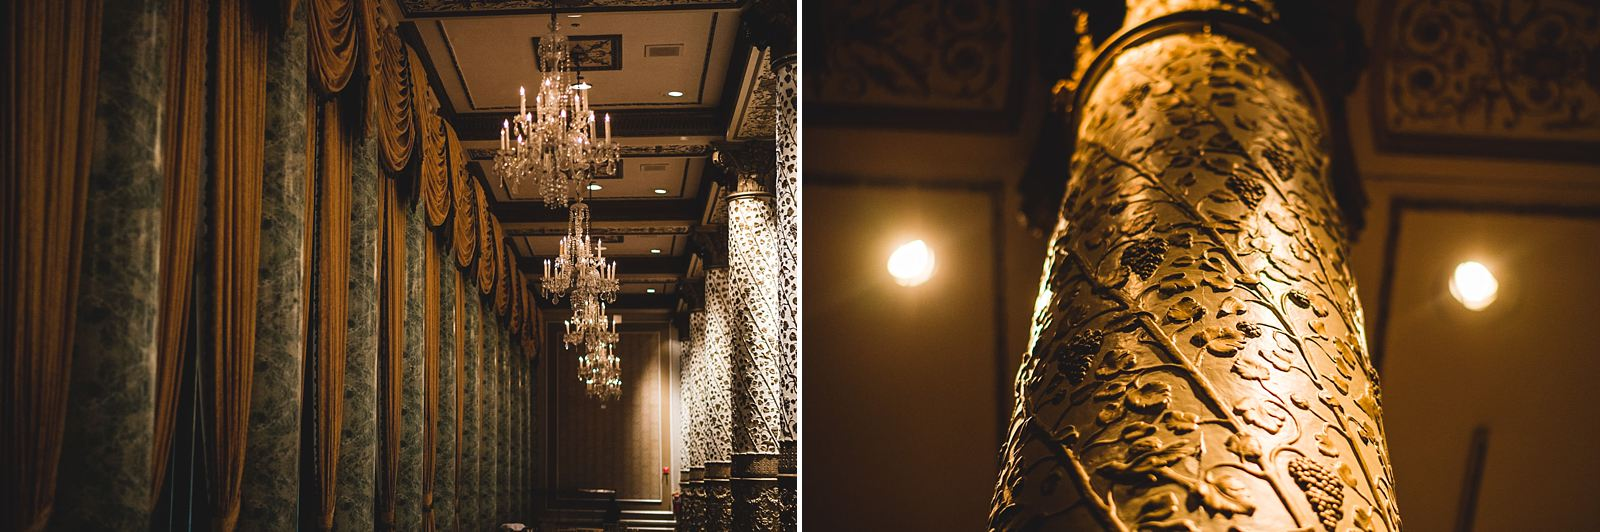 26 gold coast room details - Drake Chicago Luxury Wedding Photography // Kate + Royce